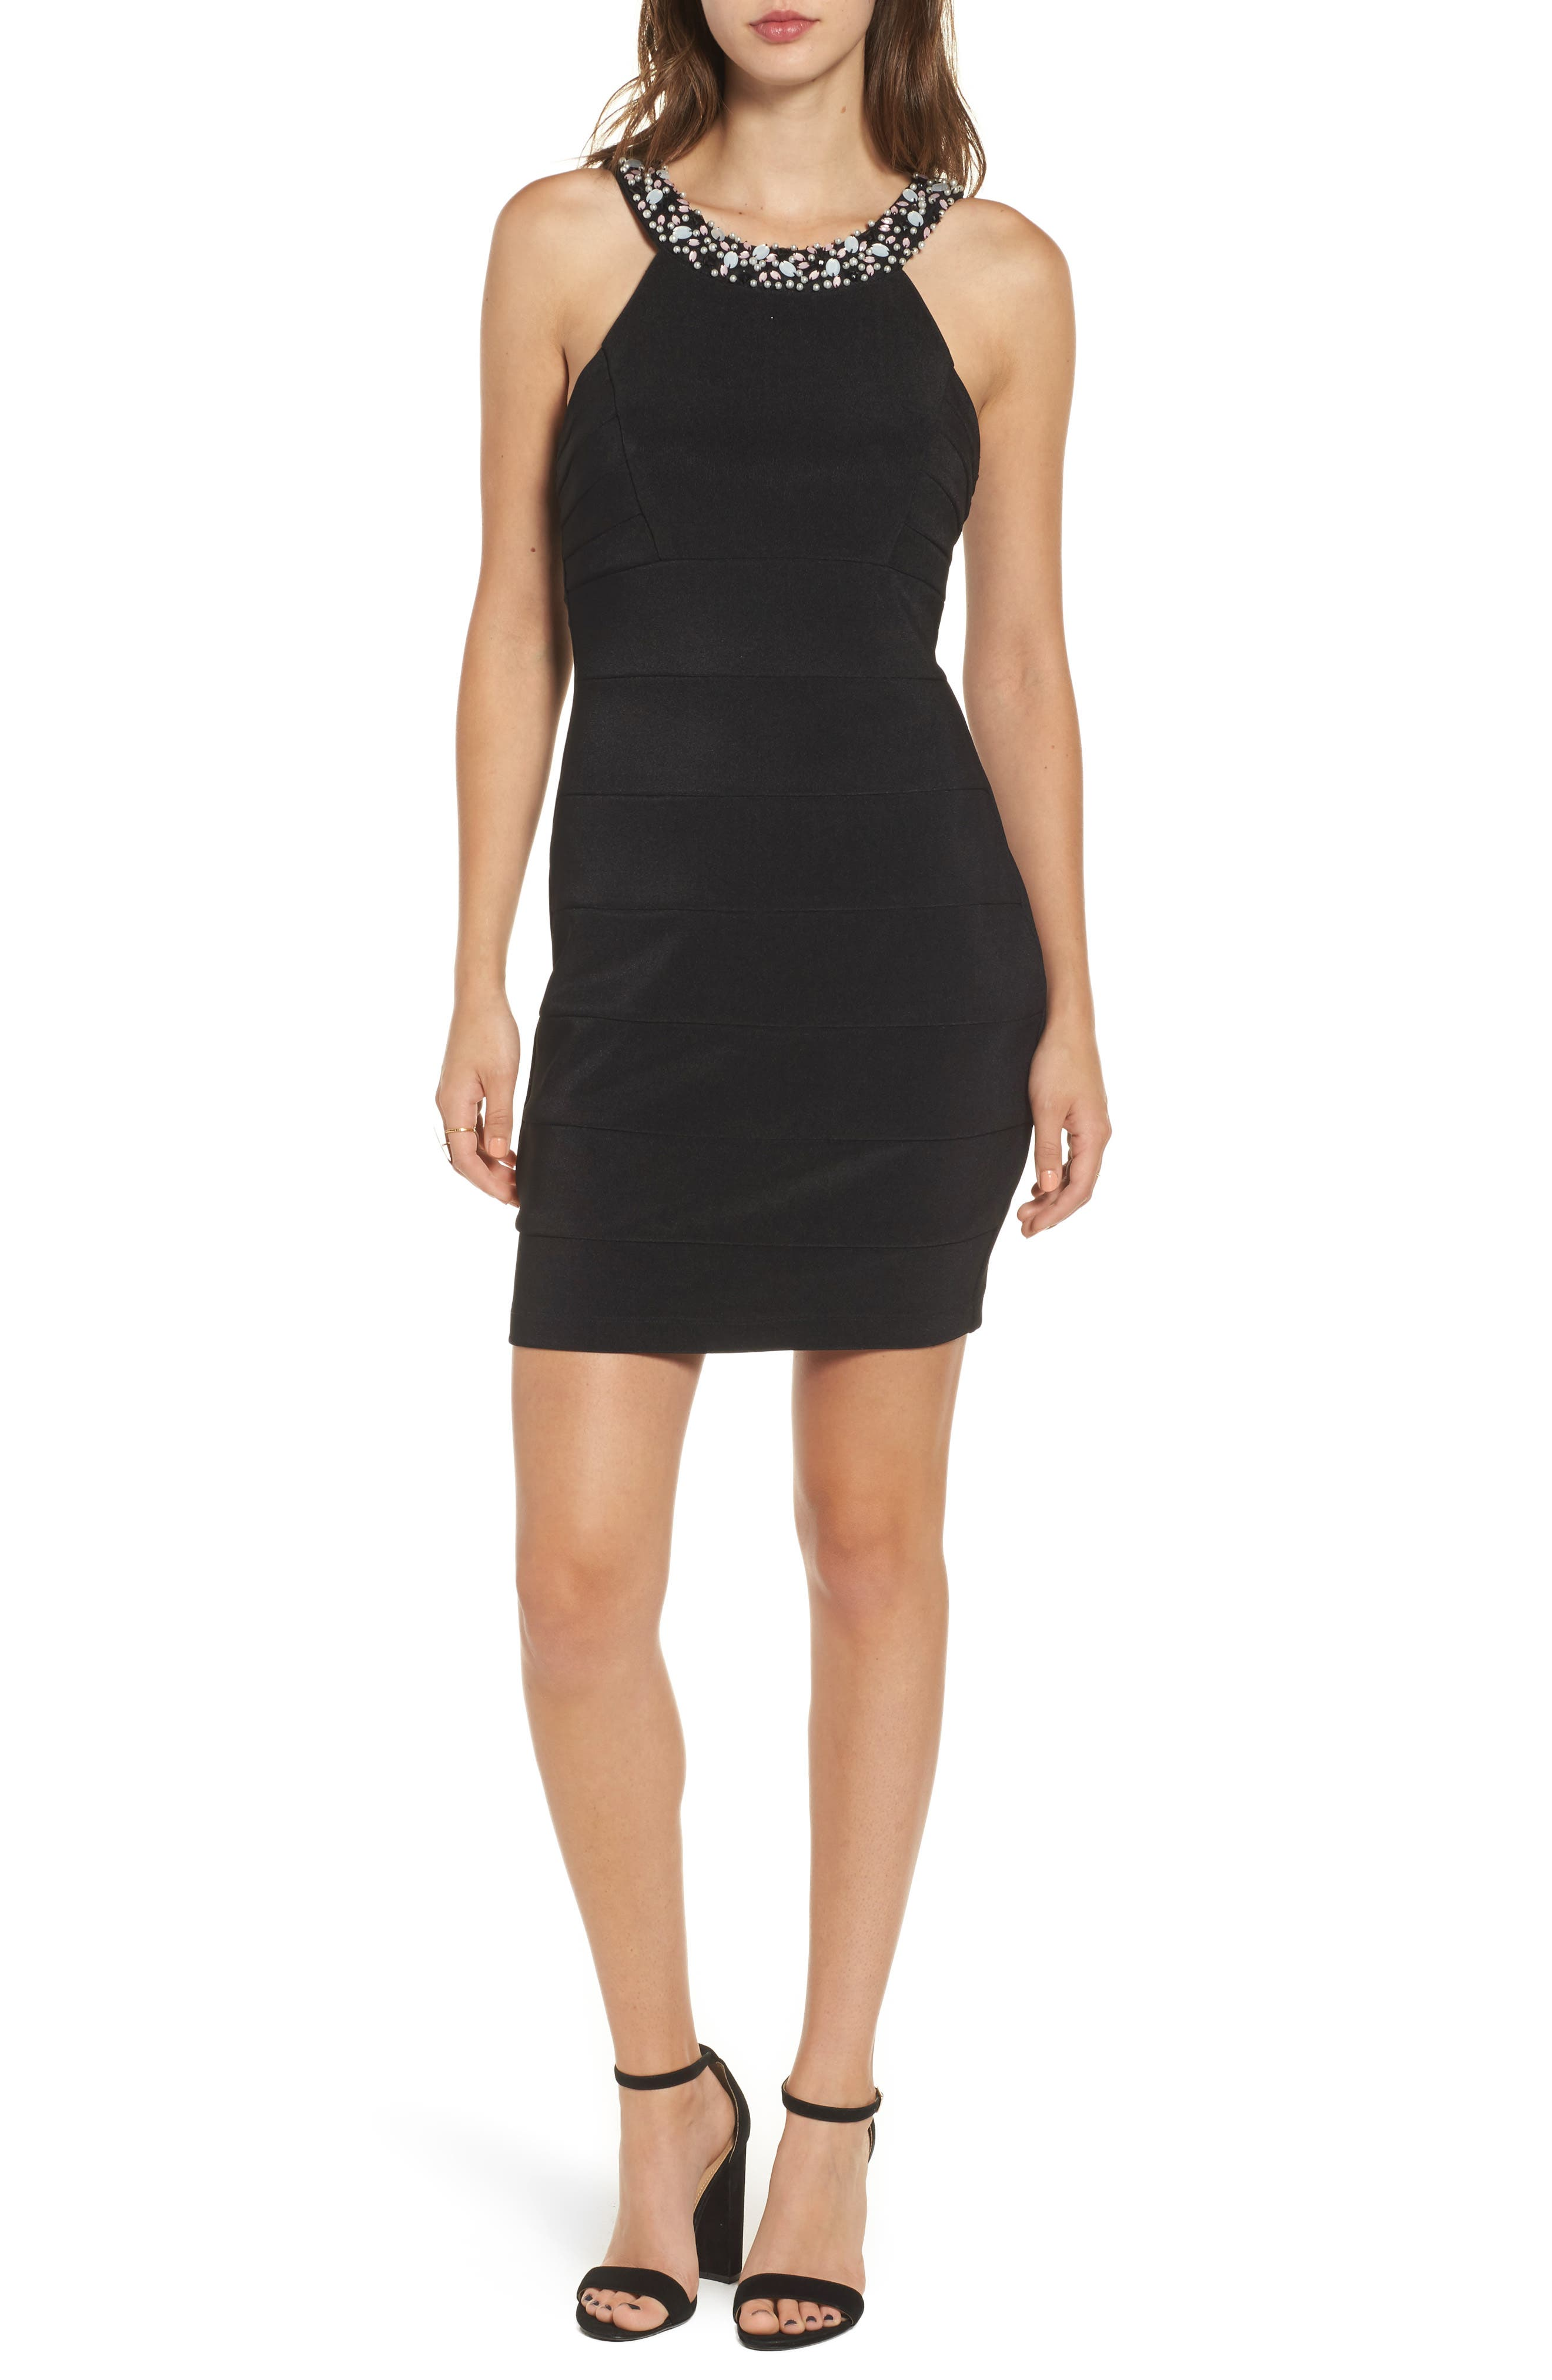 Alternate Image 1 Selected - Love Nickie Lew Beaded Body Con Dress